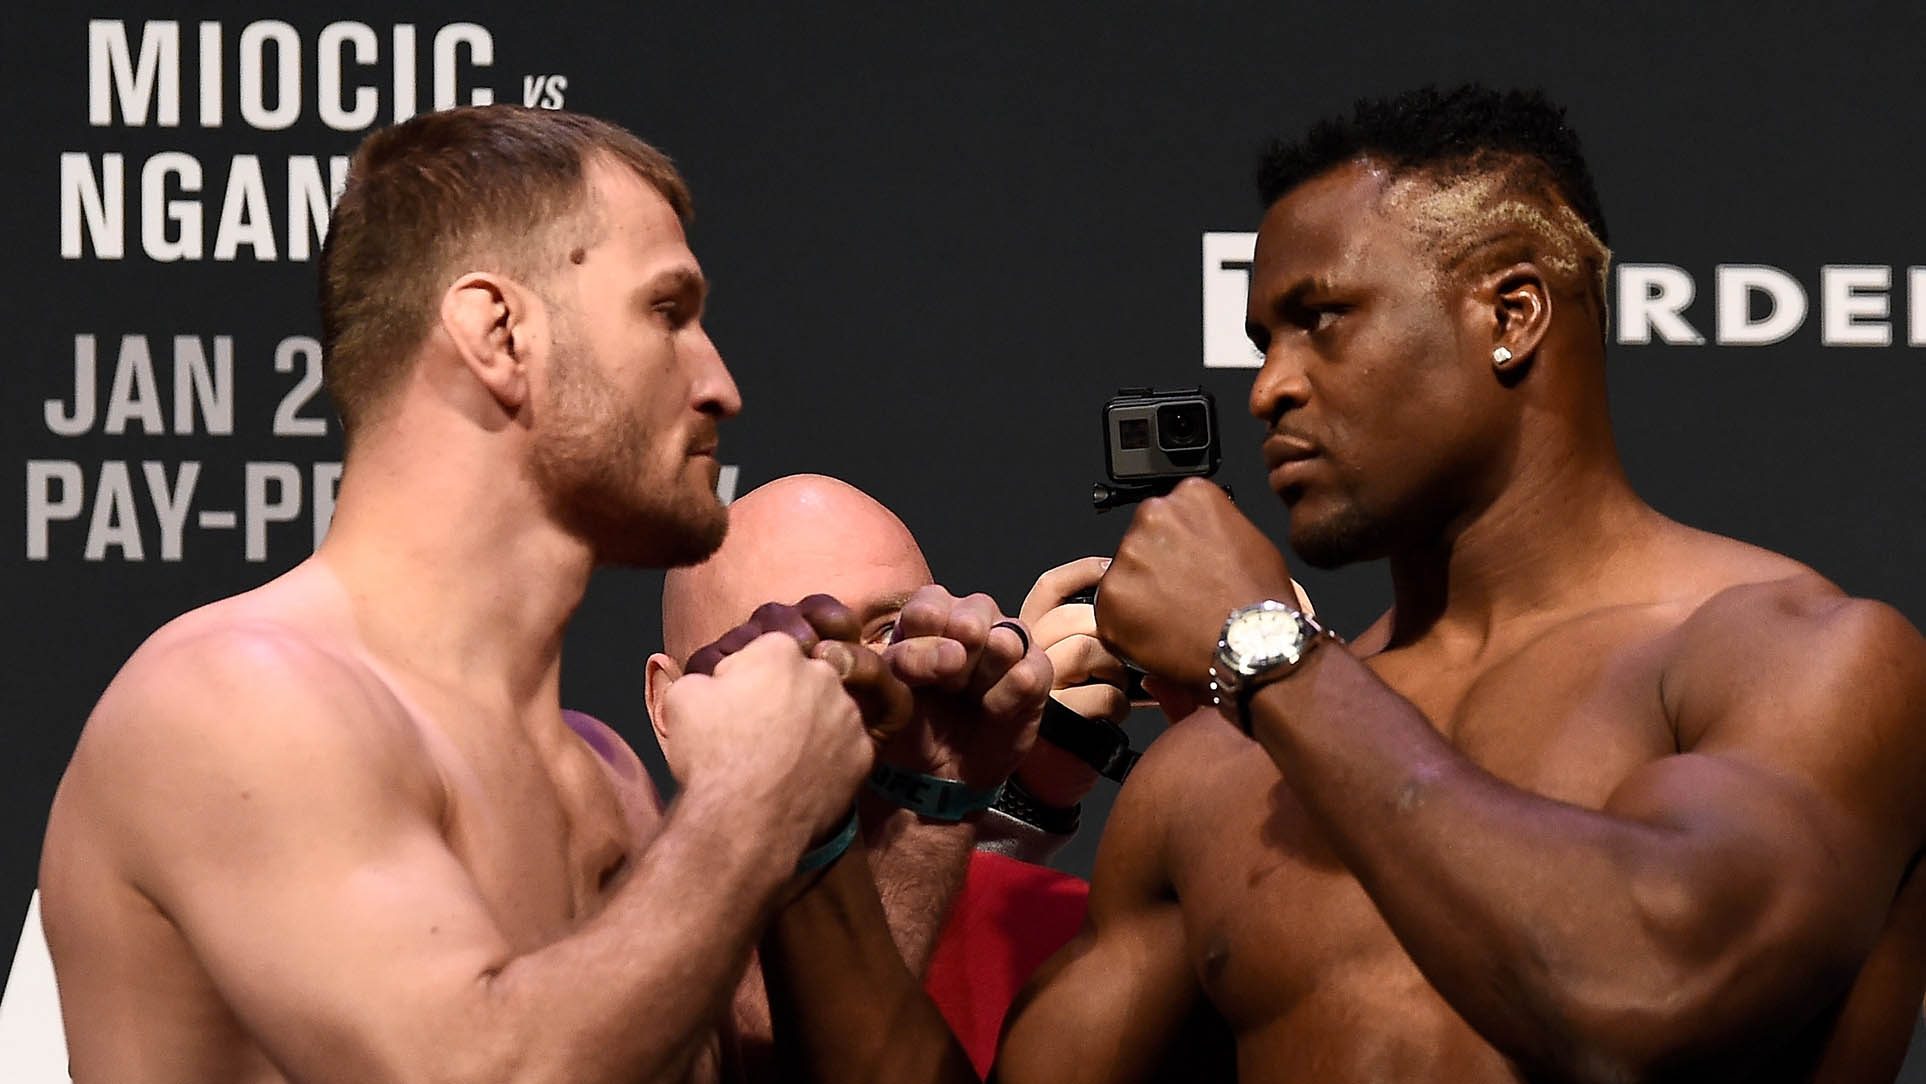 (L-R) Stipe Miocic and Francis Ngannou of Cameroon face off during the UFC 220 weigh-in at TD Garden on January 19, 2018 in Boston, Massachusetts. (Photo by Jeff Bottari/Zuffa LLC/Zuffa LLC via Getty Images)